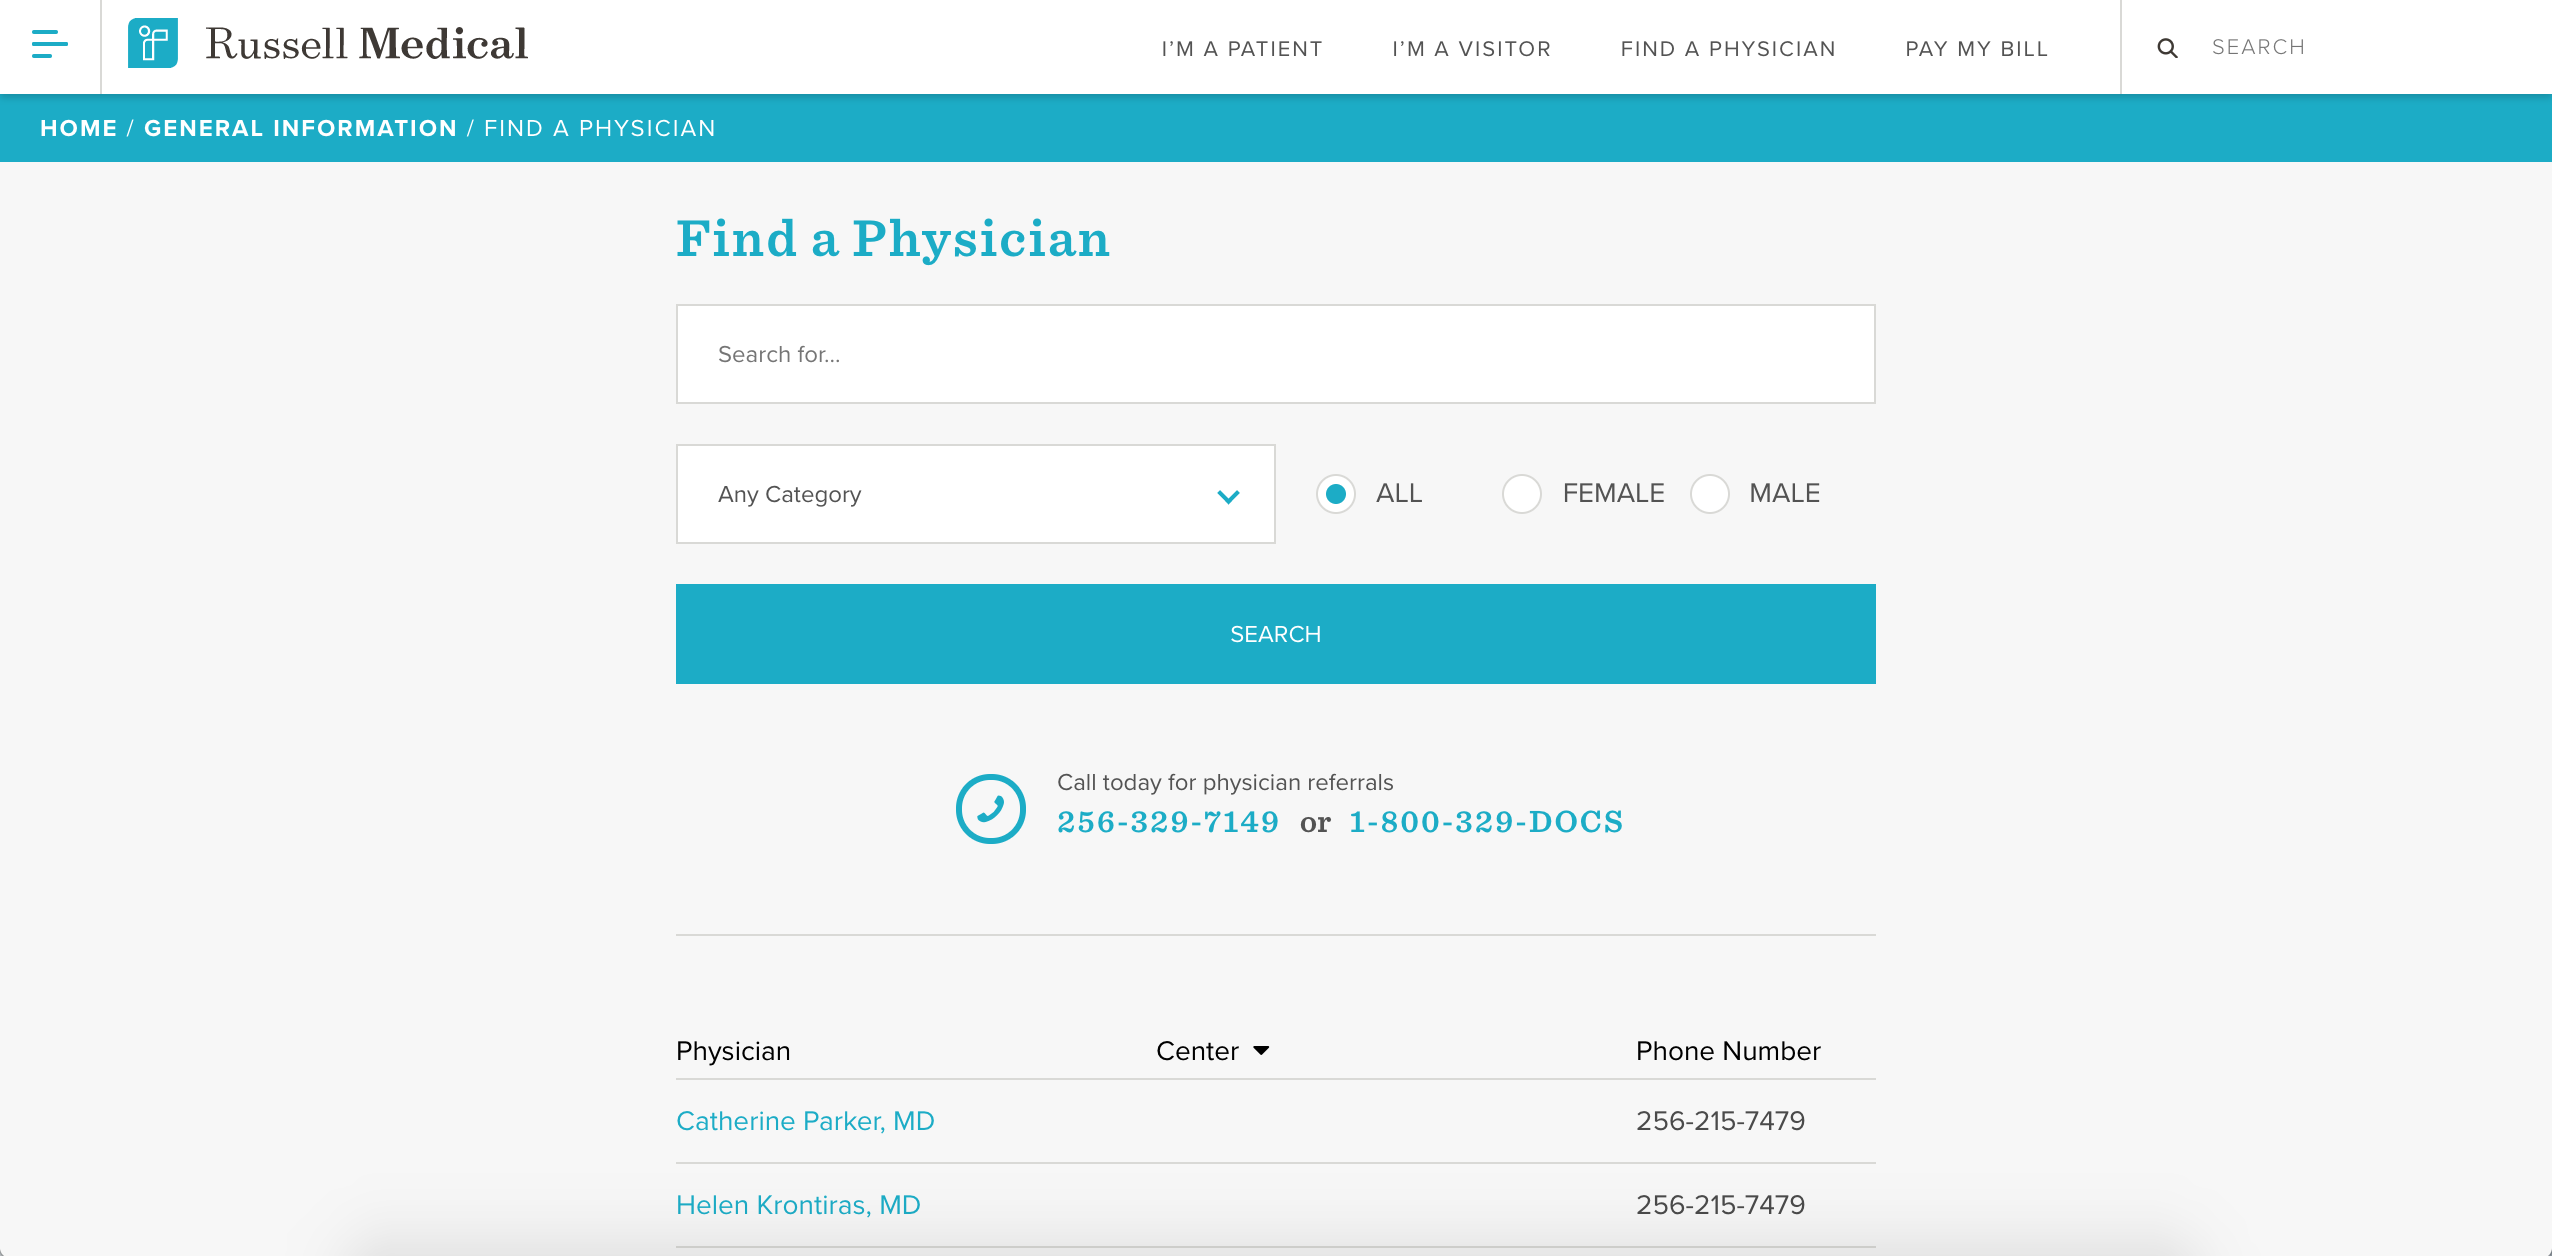 Russell Medical Find a Physician Page